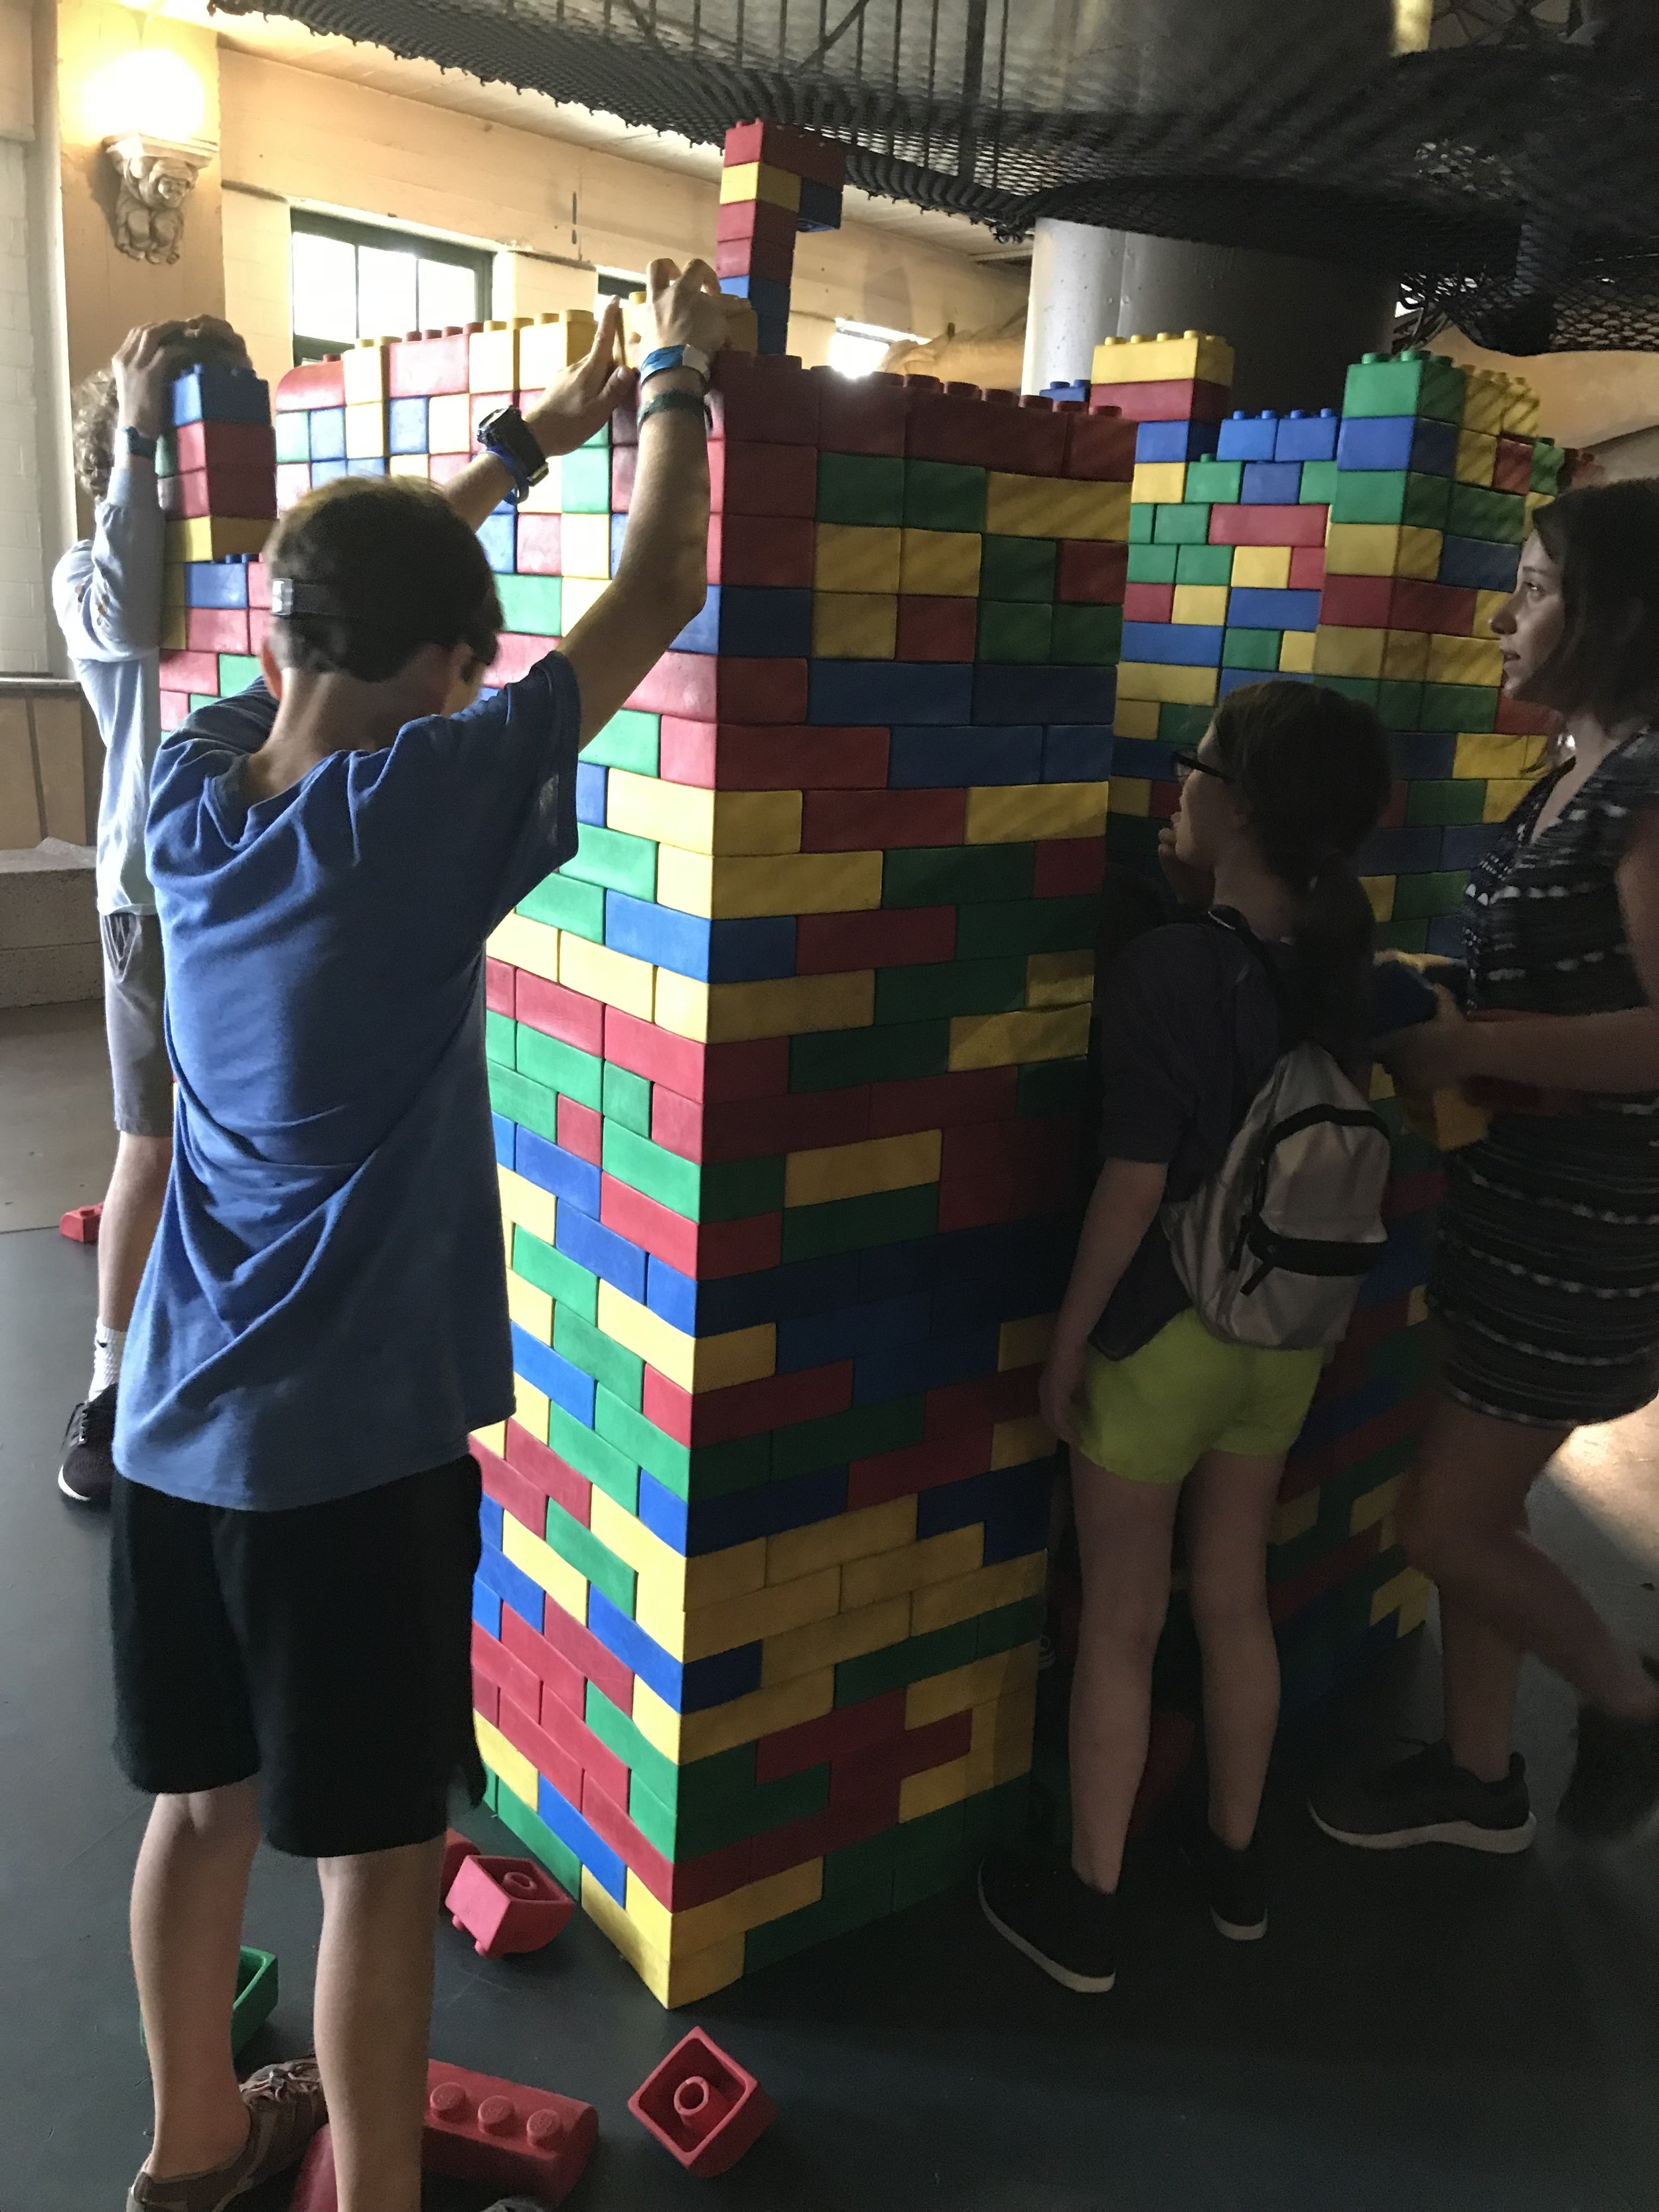 Life-sized LEGO tower that the kids were contributing to (City Museum)